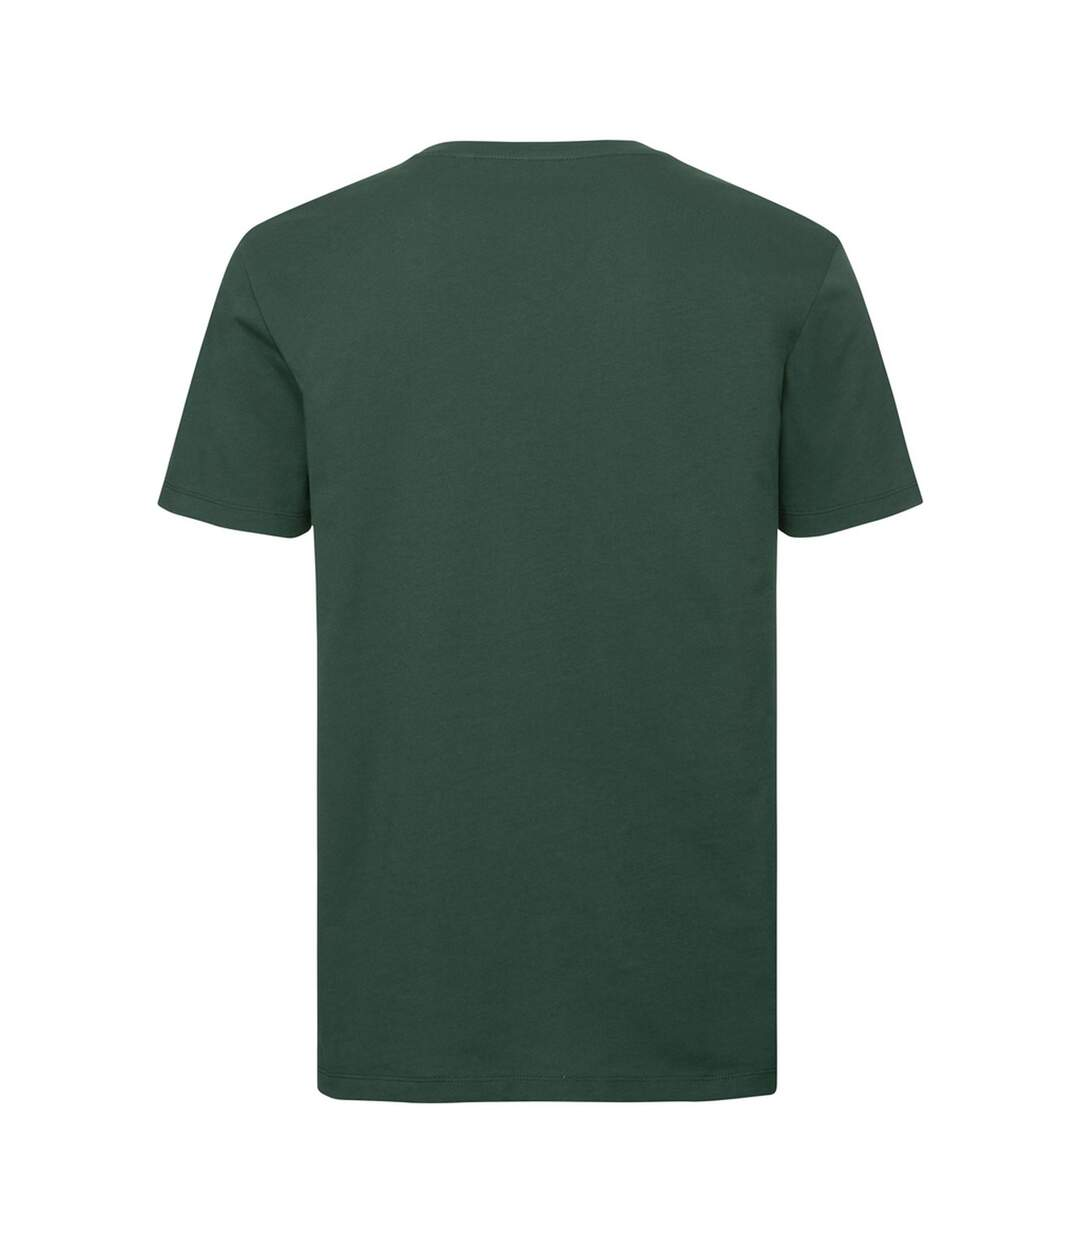 Russell - T-shirt manches courtes AUTHENTIC - Homme (Vert bouteille) - UTPC3569